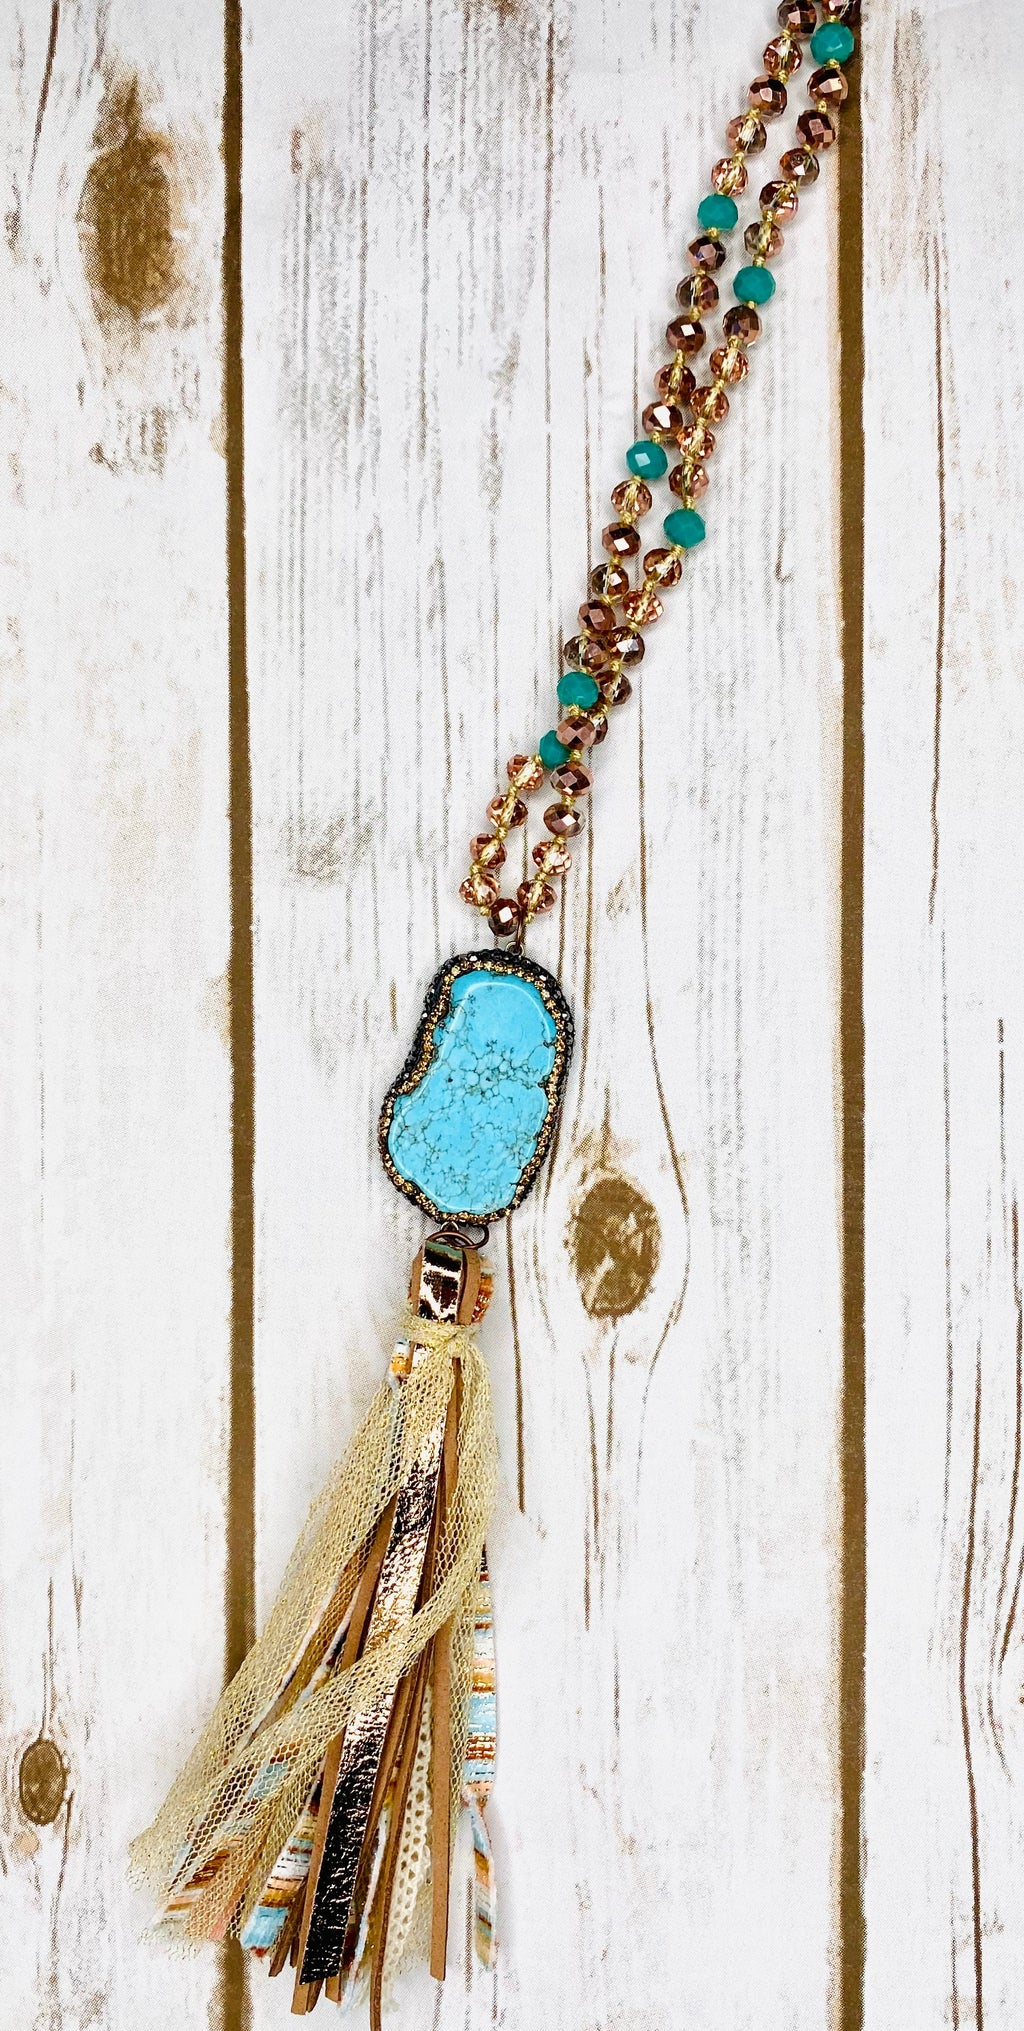 Turquoise Stone Pendant with Tassel NCK212